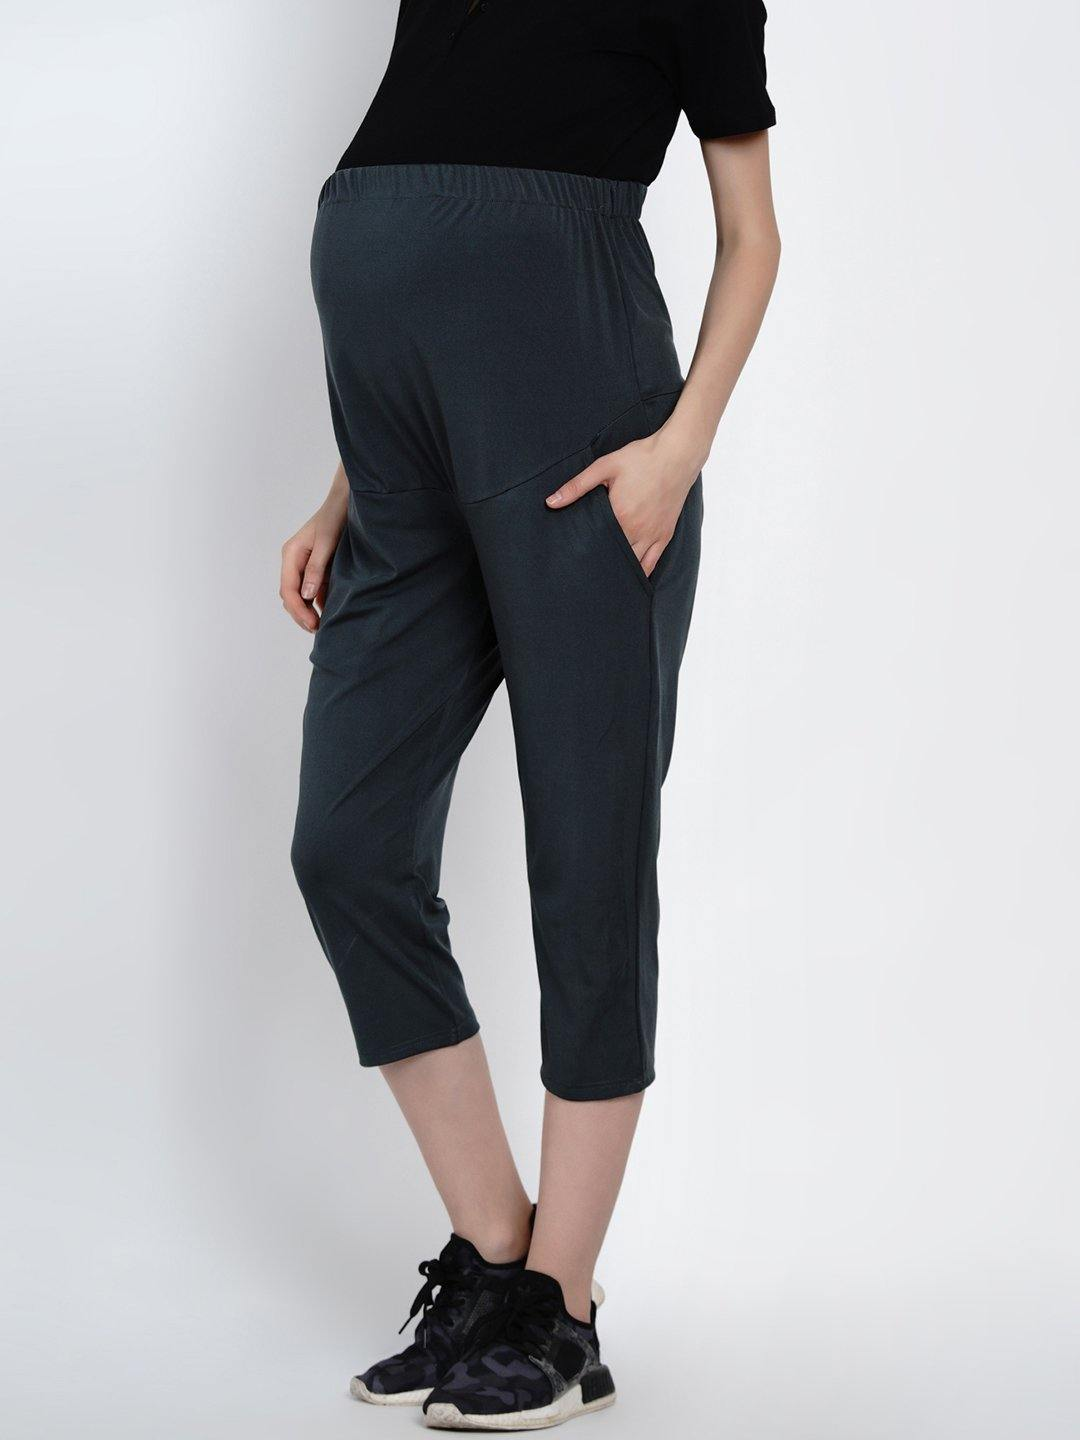 Mine4Nine - Trackpants - Mine4Nine Women's Grey Cotton Lycra Maternity Track Pants